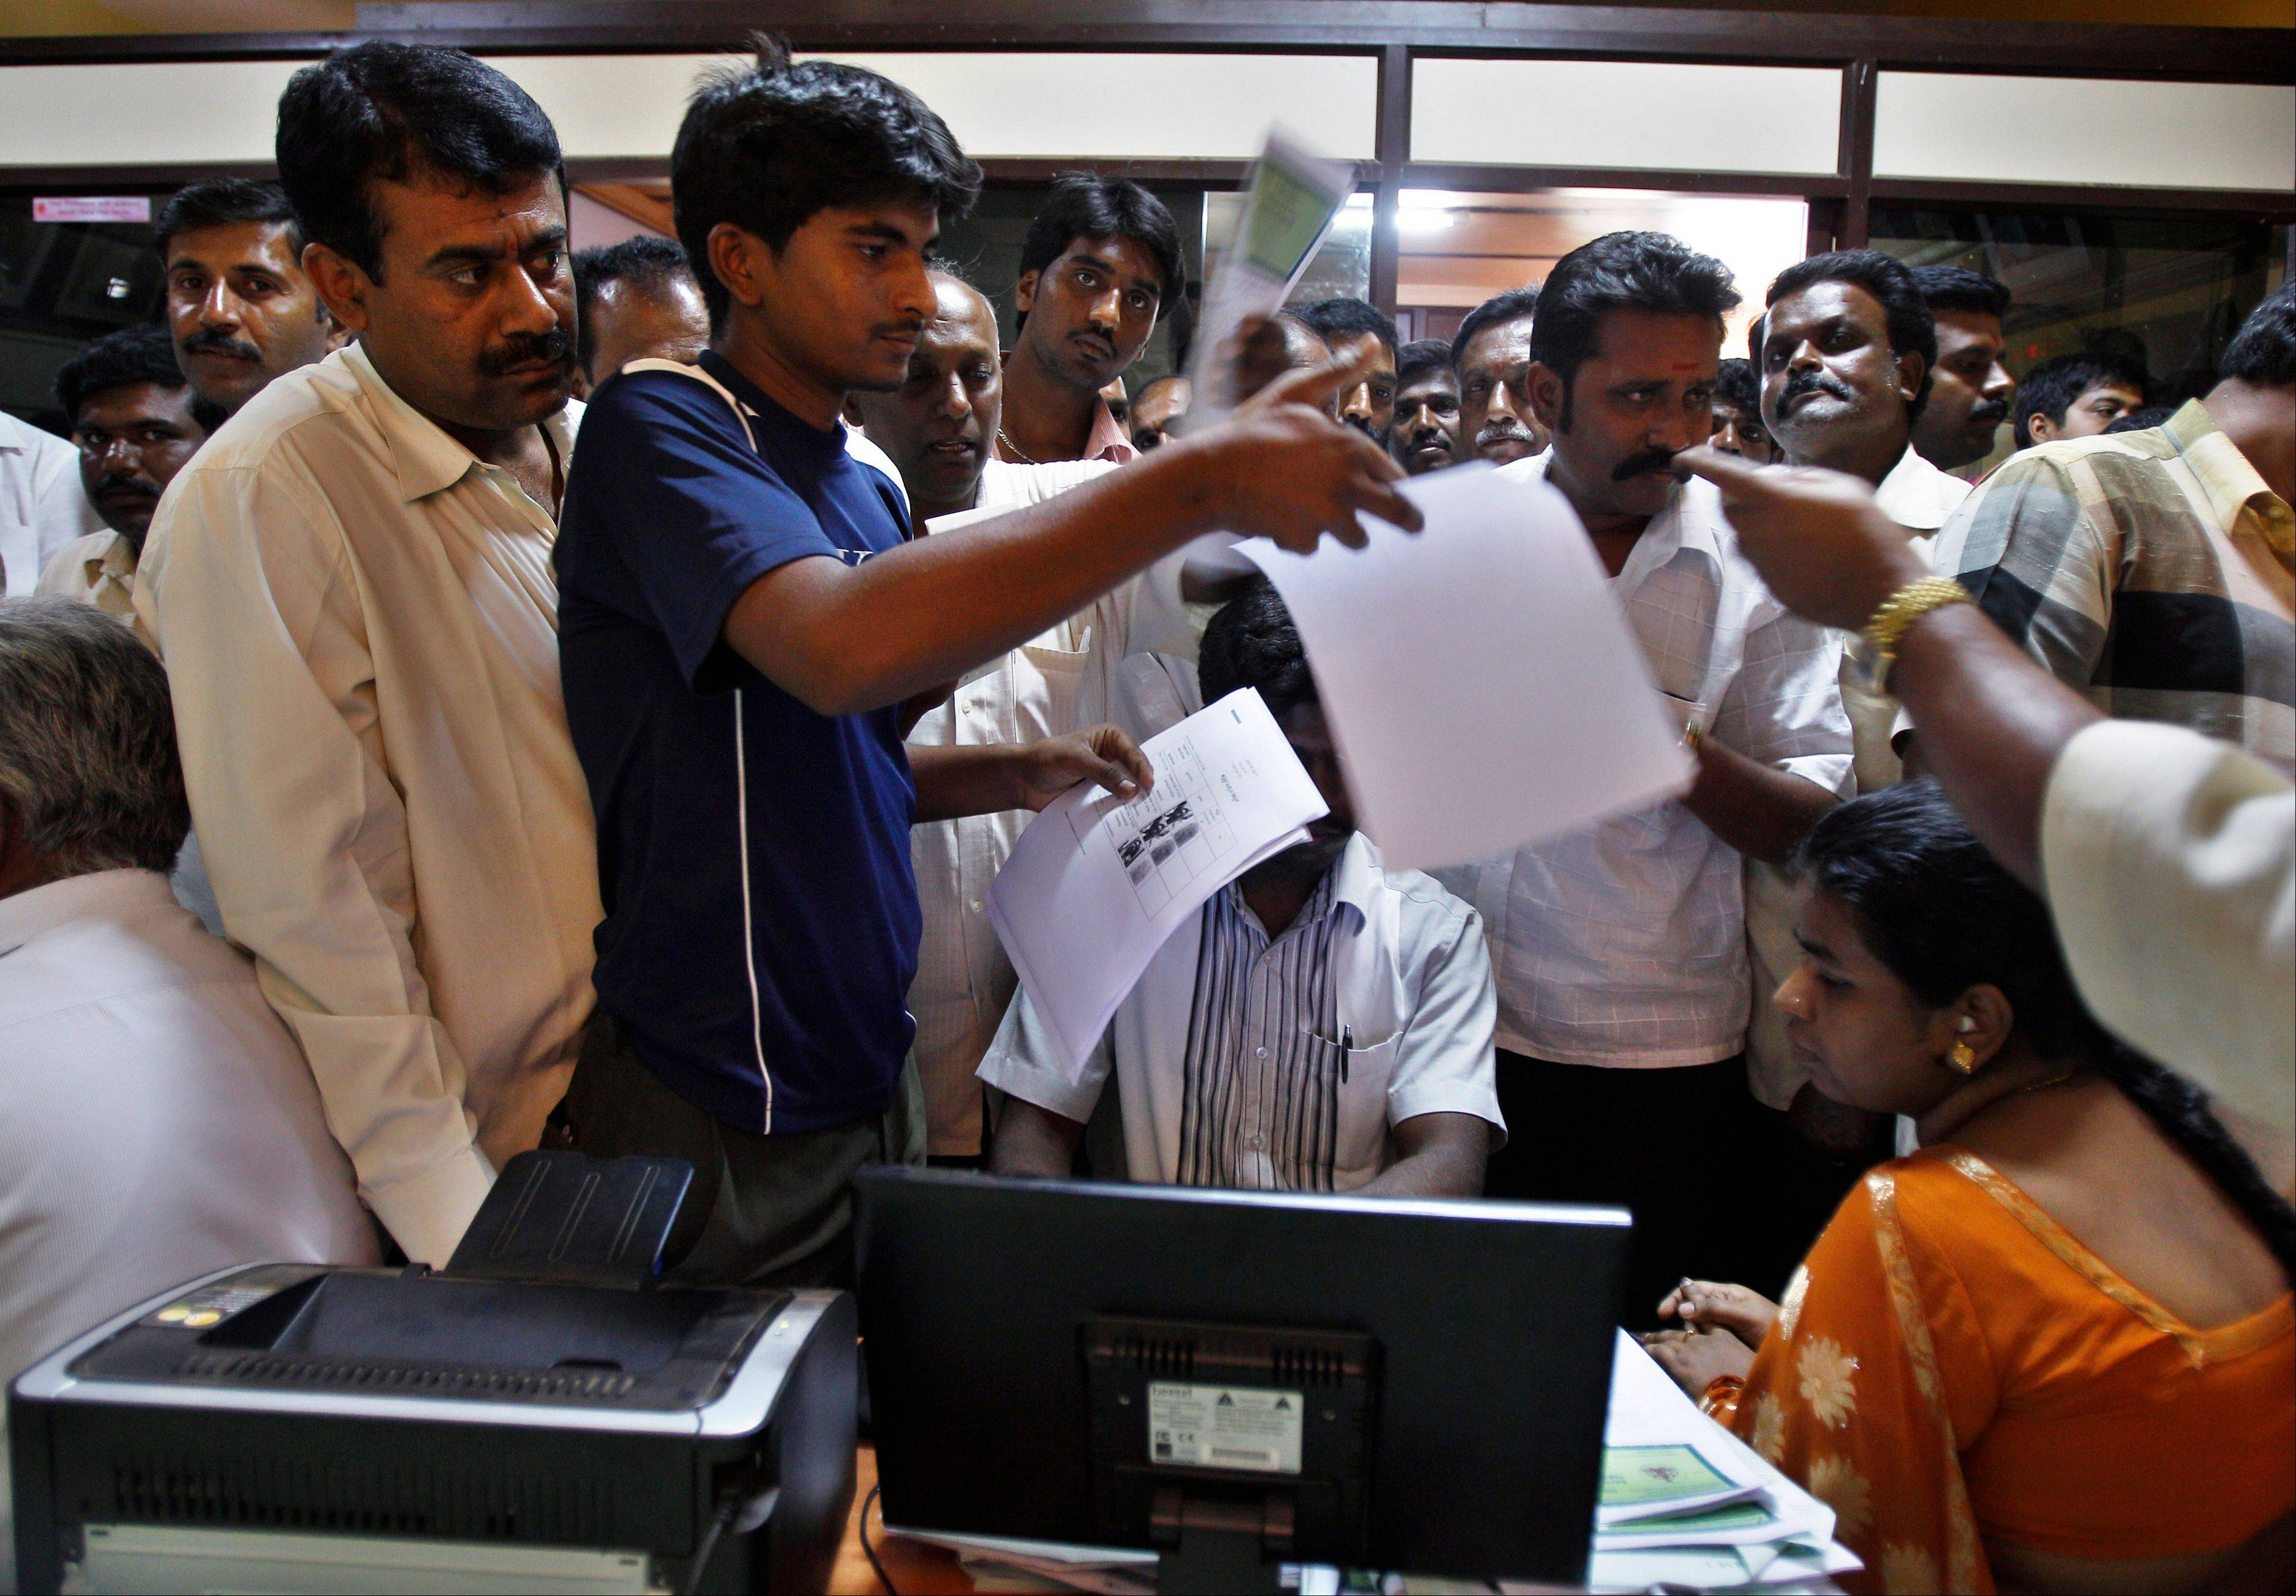 People crowd inside the government registrar's office to get their land registered, in Hoskote 19 miles from Bangalore in the southern Indian state of Karnataka. For years, Karnataka's land records were a quagmire of disputed, forged documents maintained by thousands of tyrannical bureaucrats who demanded bribes to do their jobs. In 2002, there were hopes that this was about to change.